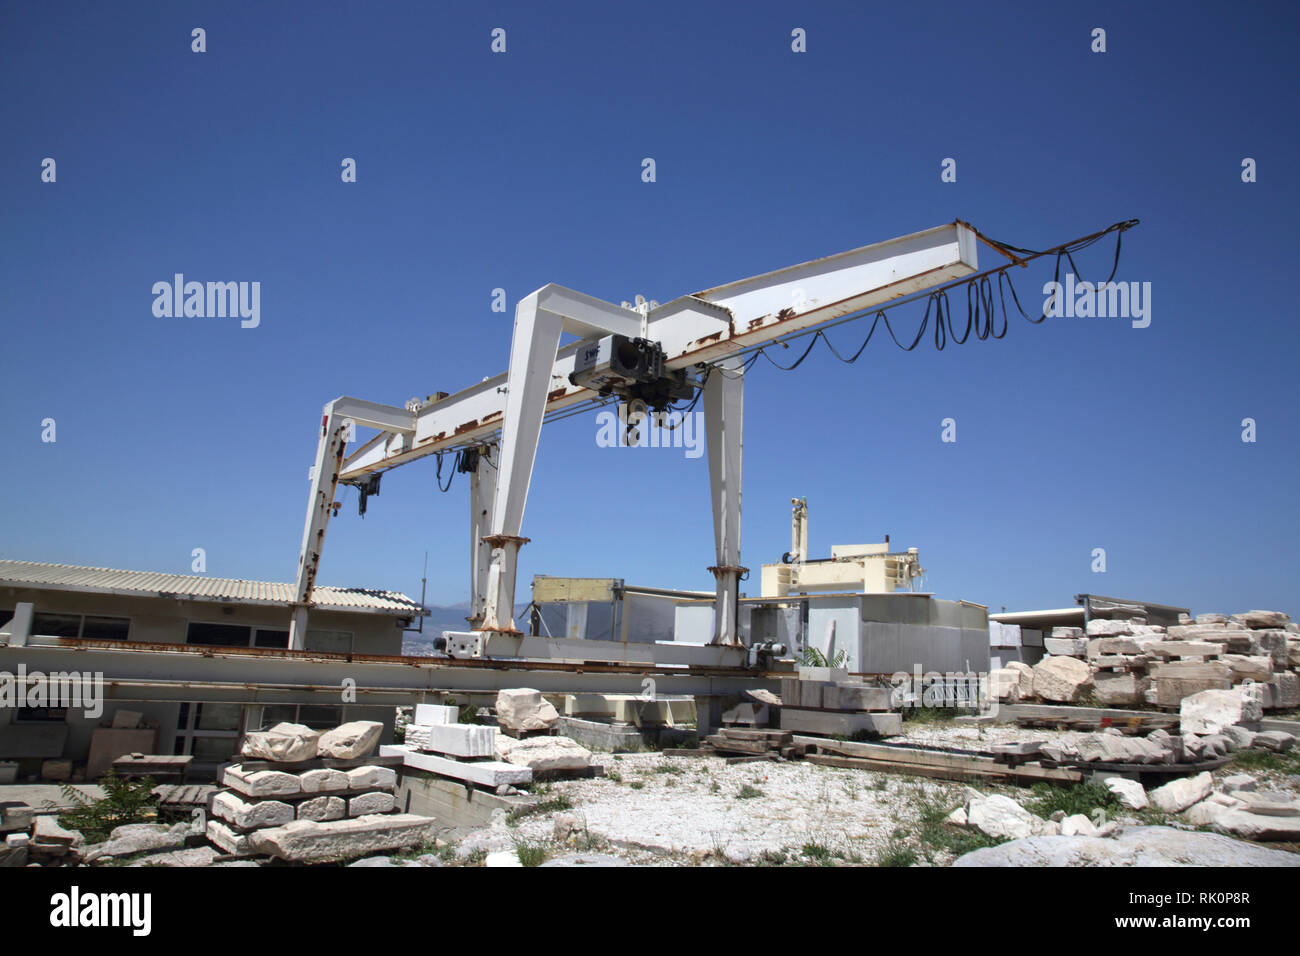 Acropolis Athens Greece Gantry Crane being used to handle stones for the Restoration of the Acropolis - Stock Image